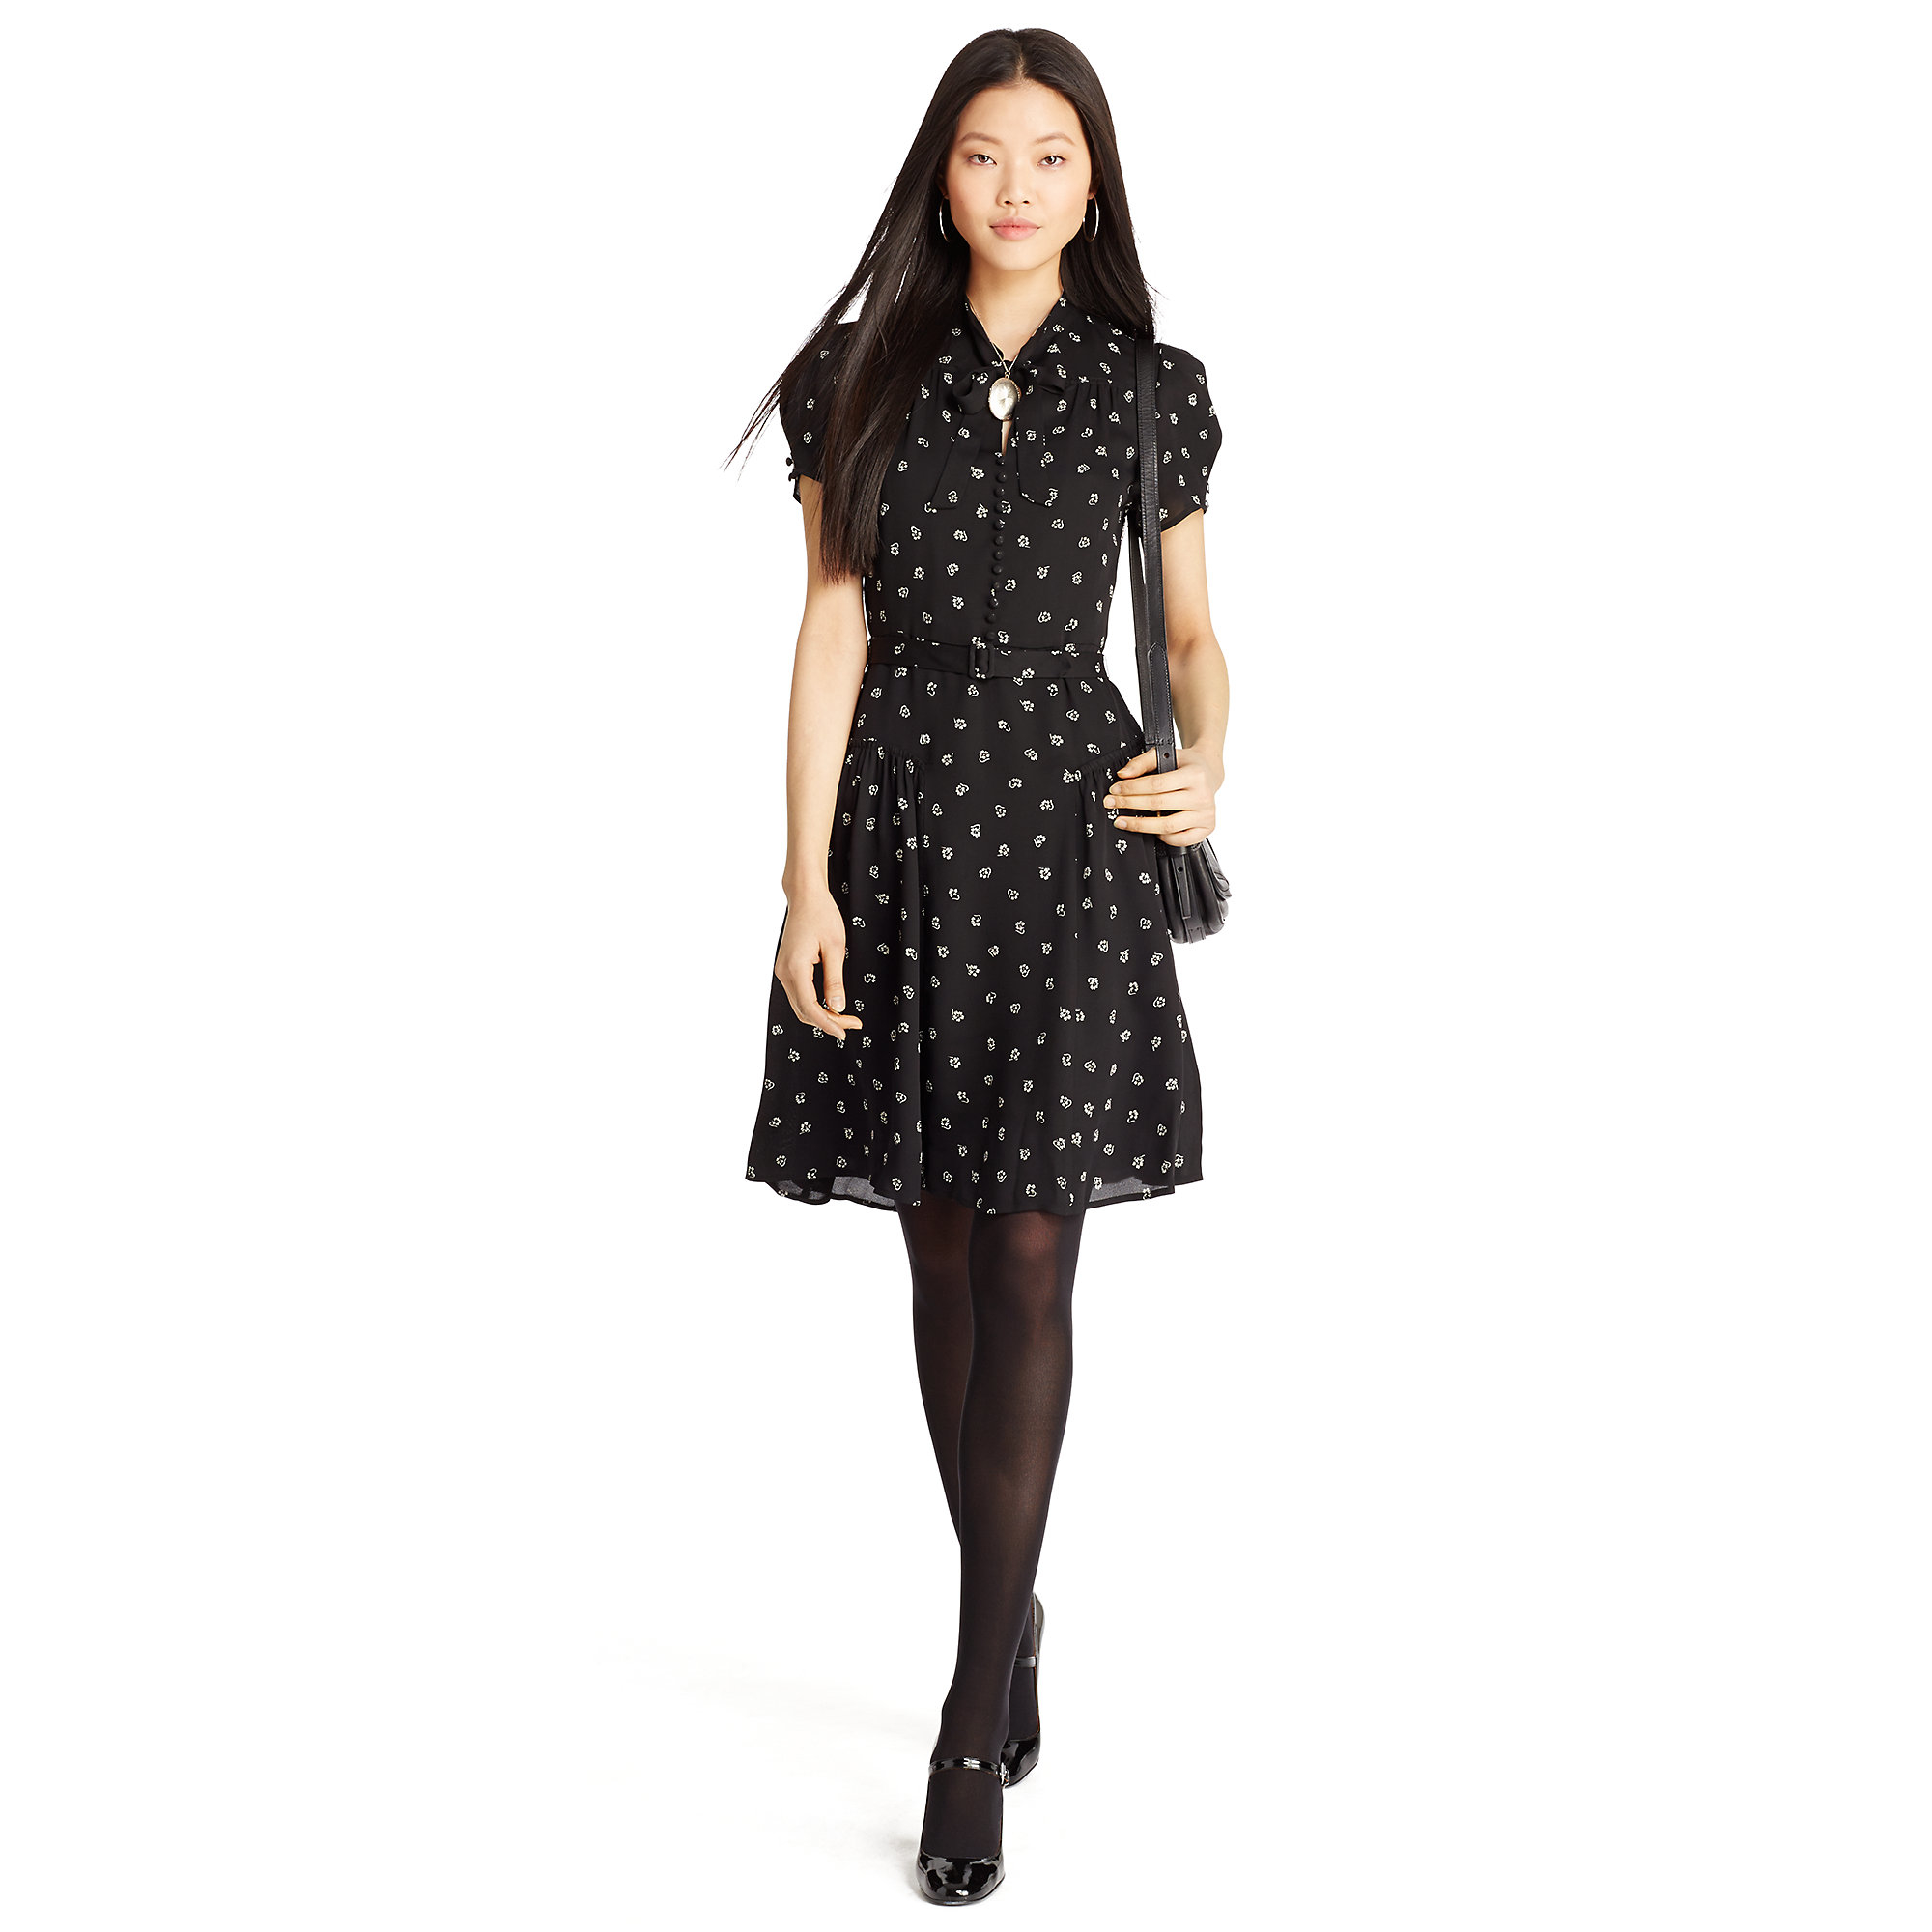 Lyst - Polo Ralph Lauren Floral-print Belted Dress in Black 8ae6d3bebe